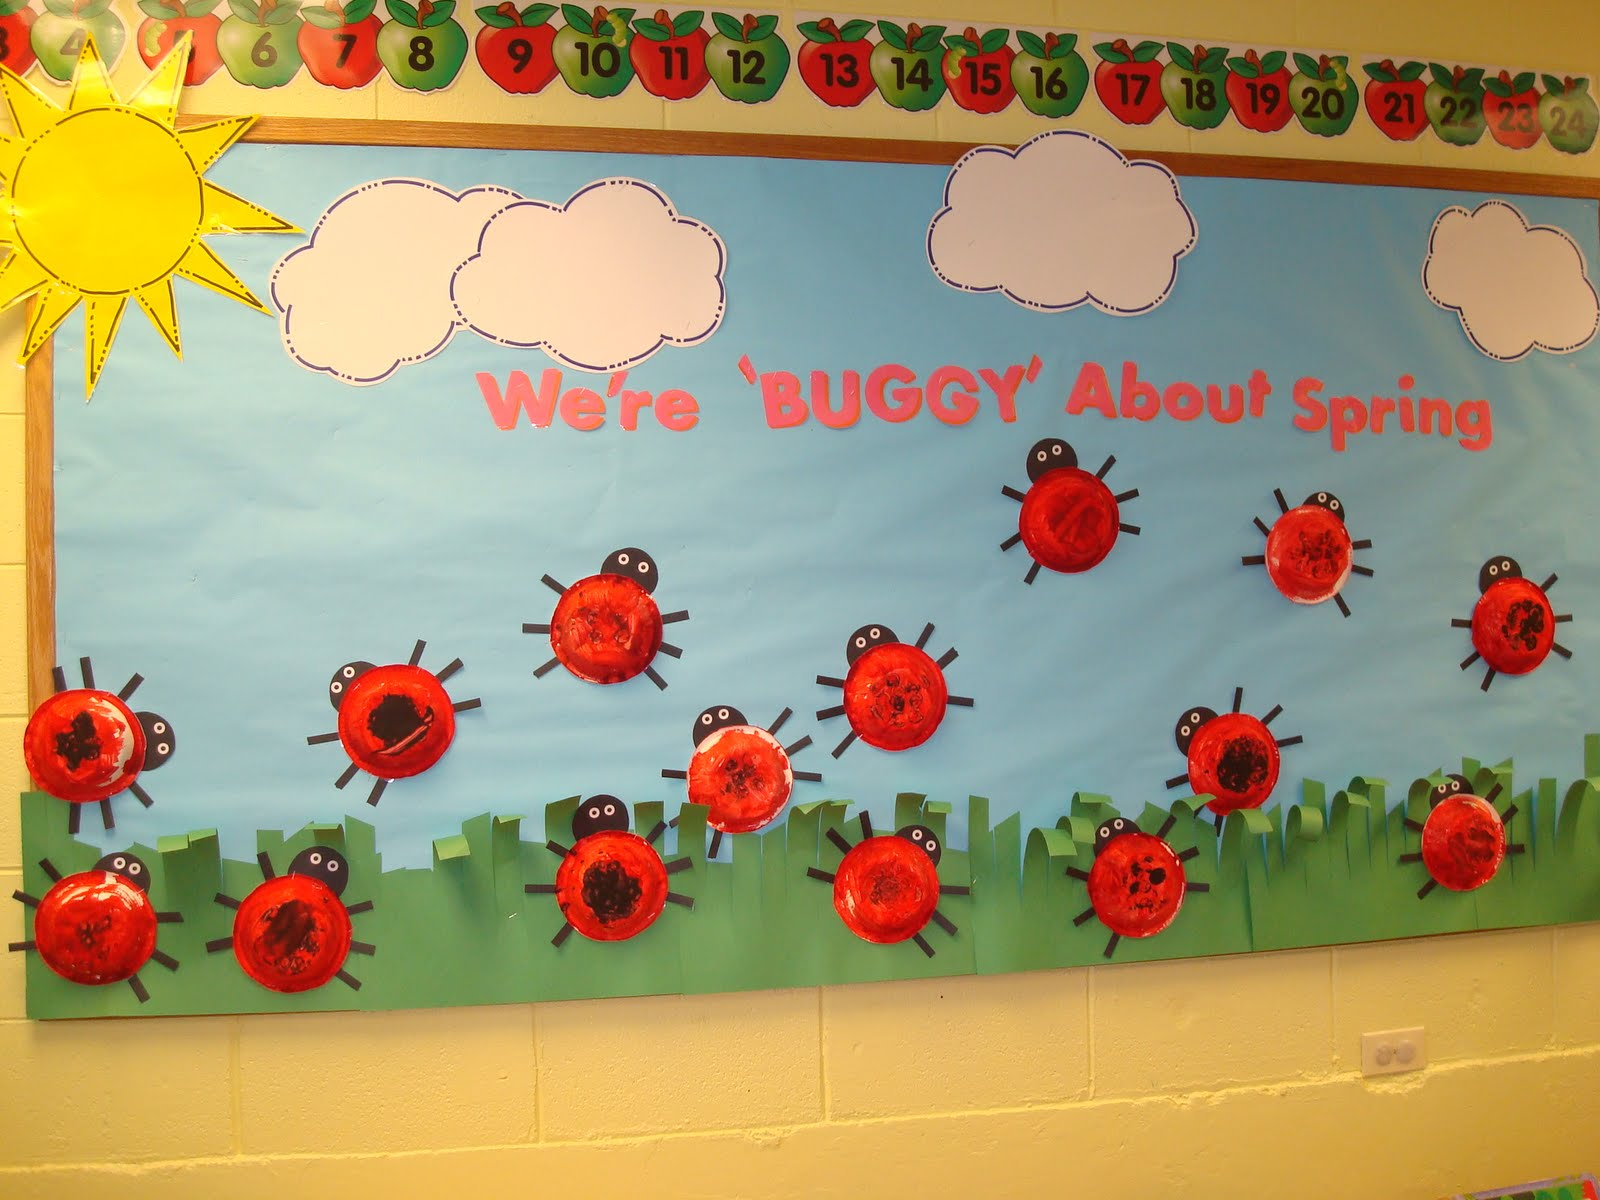 October Bulletin Board Ideas Preschool http://trinitypreschoolmp.blogspot.com/2011/04/lady-bug-were-buggy-about-spring.html